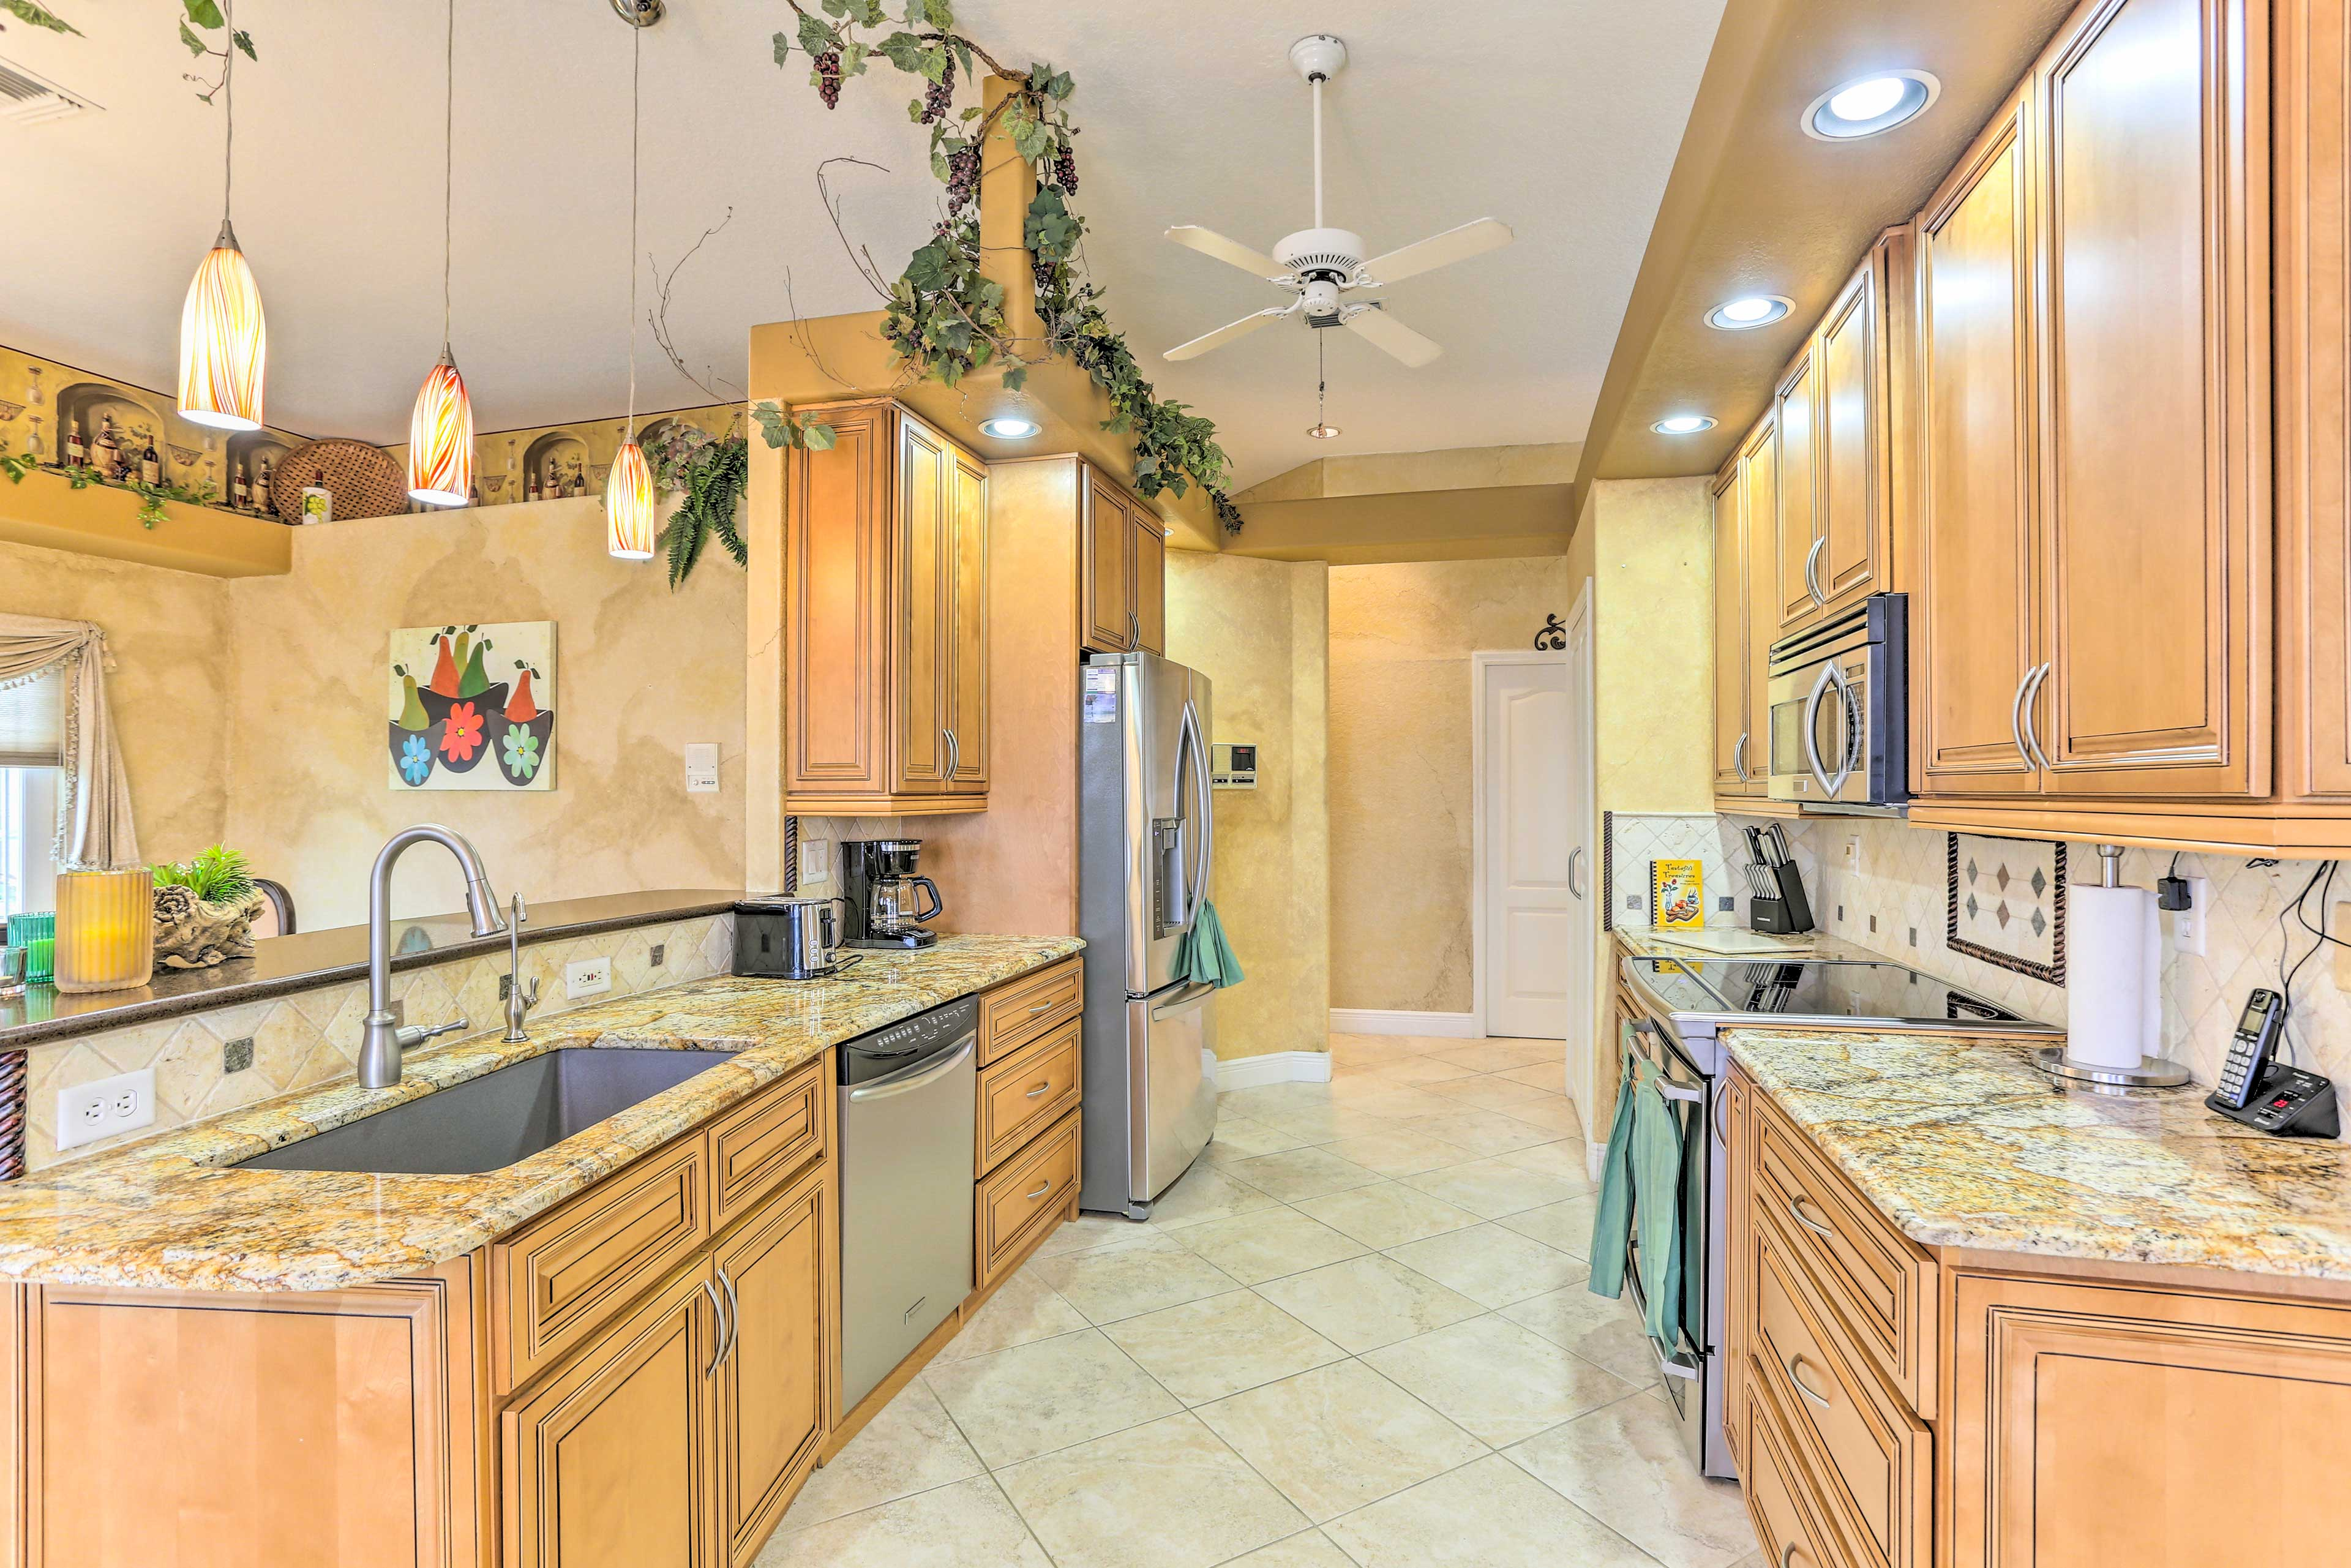 The granite countertops and stainless steel appliances highlight the space.